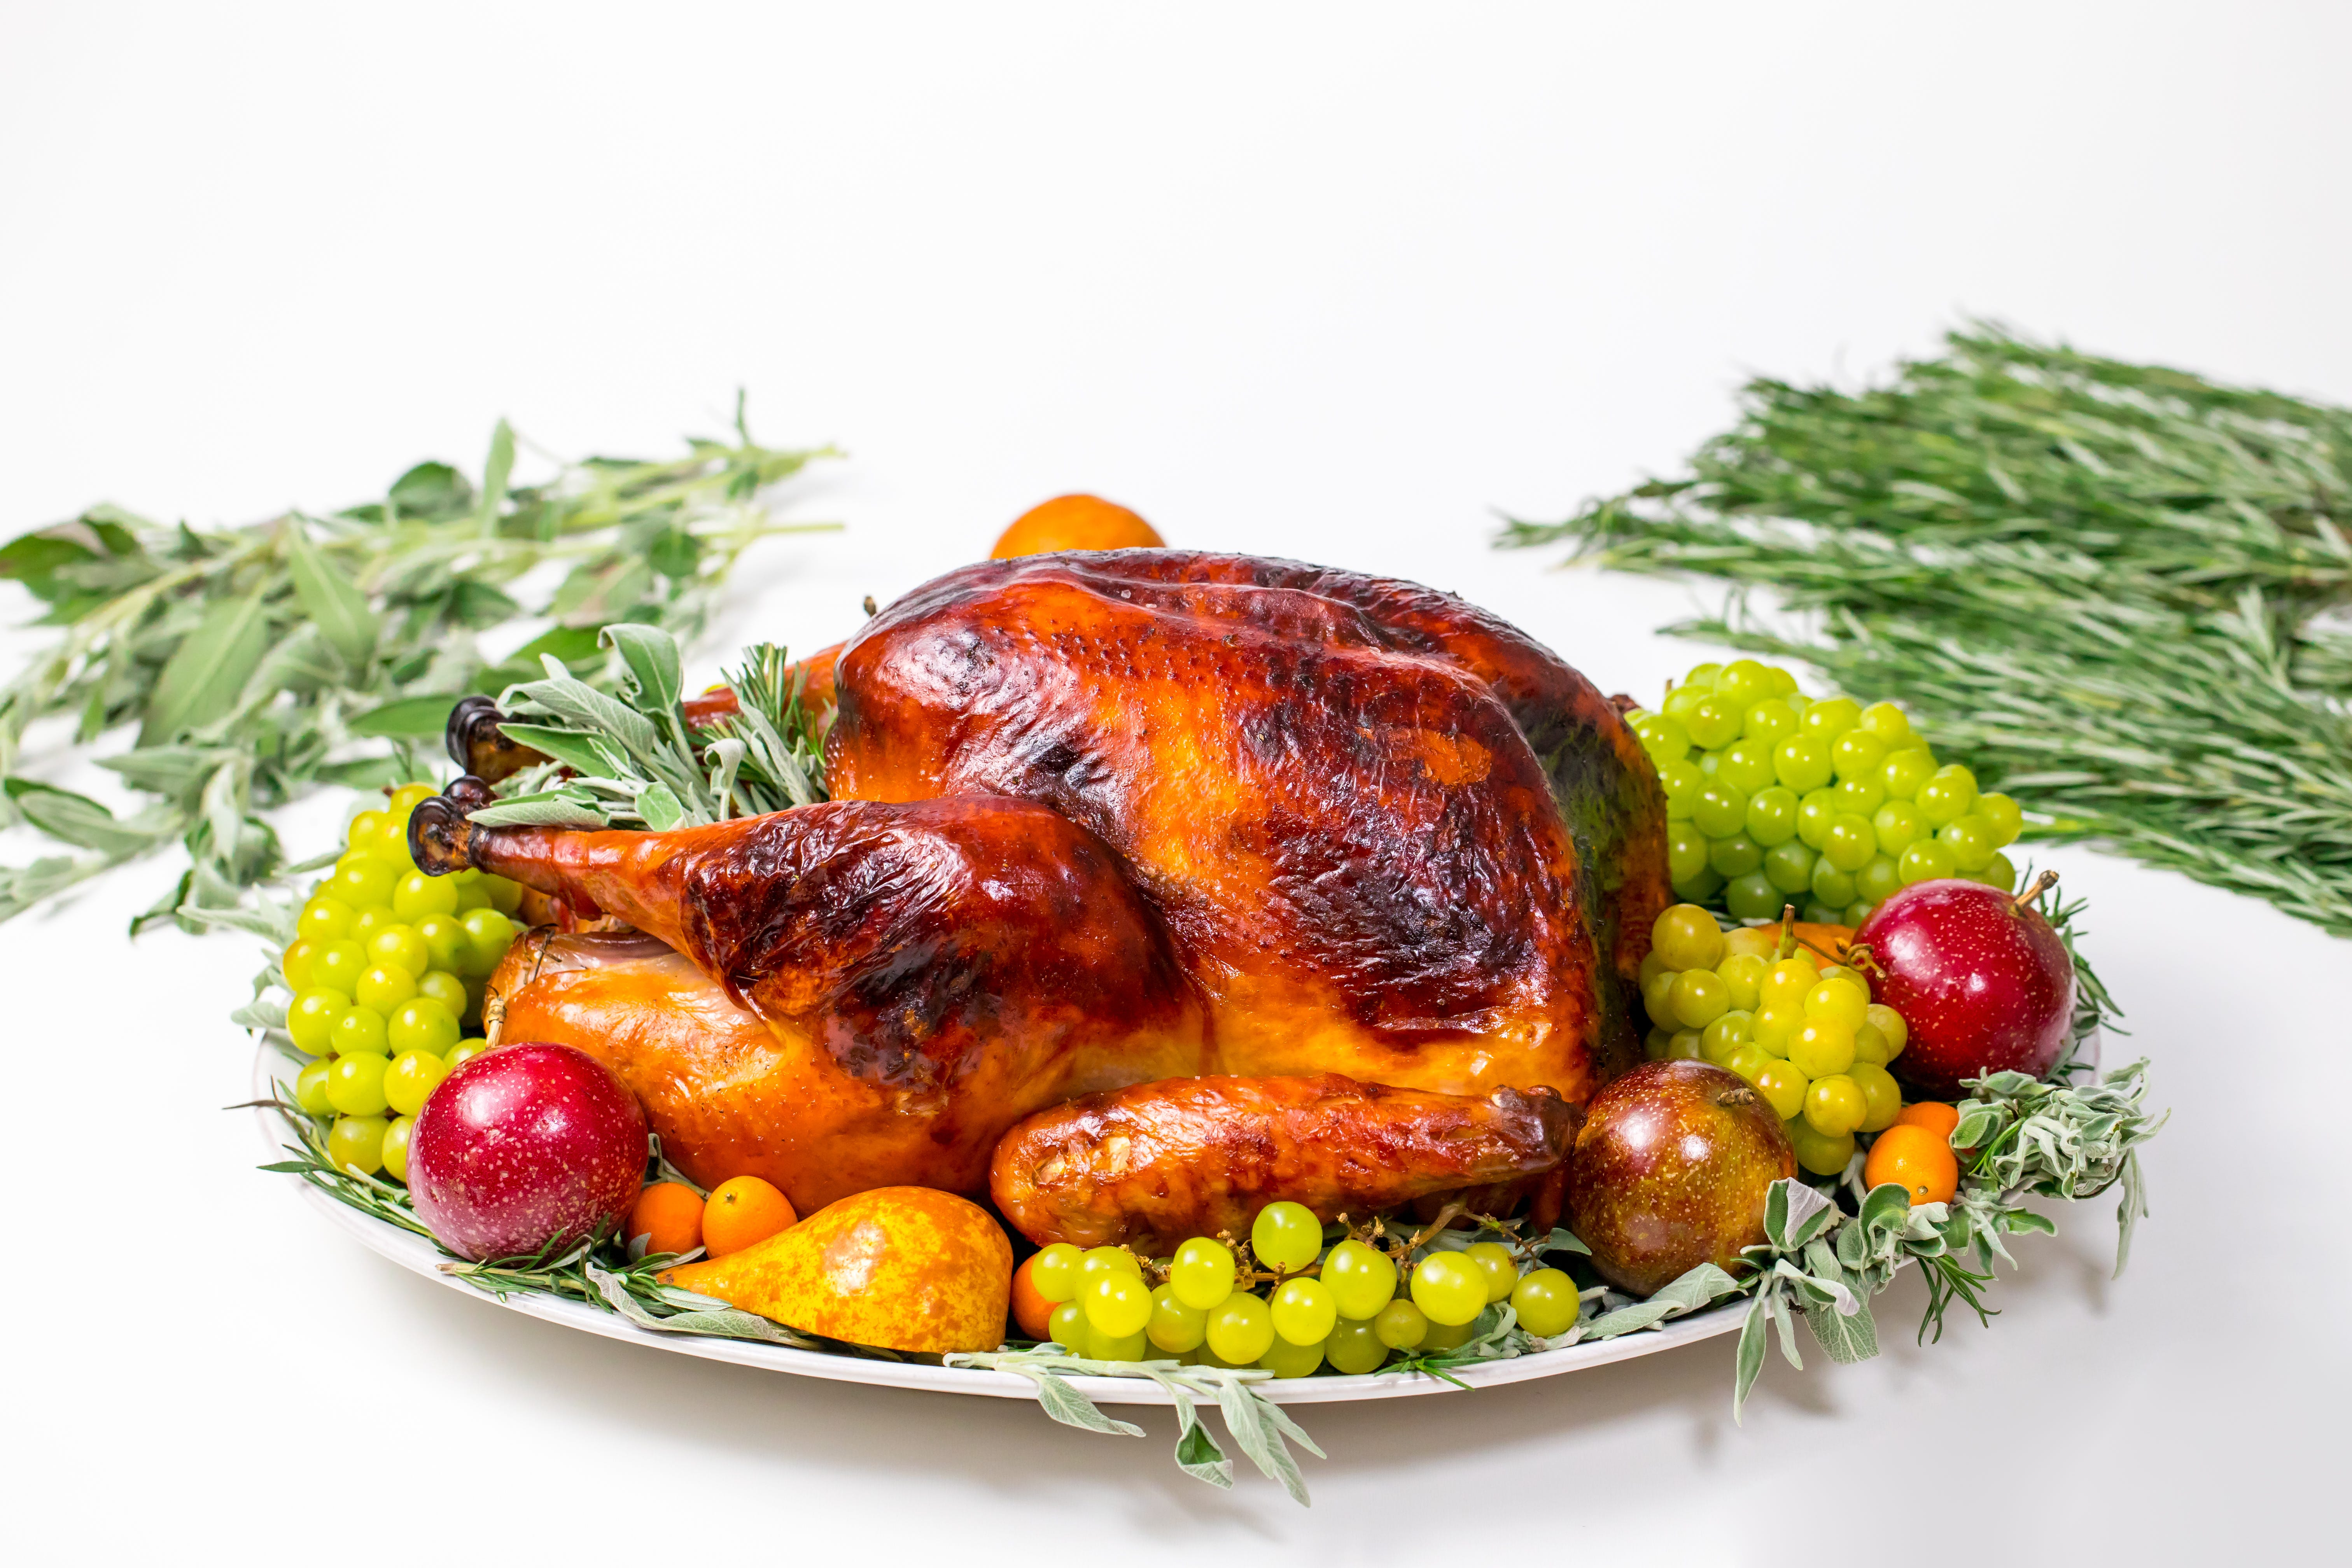 Is Kroger Open On Christmas Eve.Martha Stewart S Foolproof Method For Brining And Roasting Your T Day Turkey